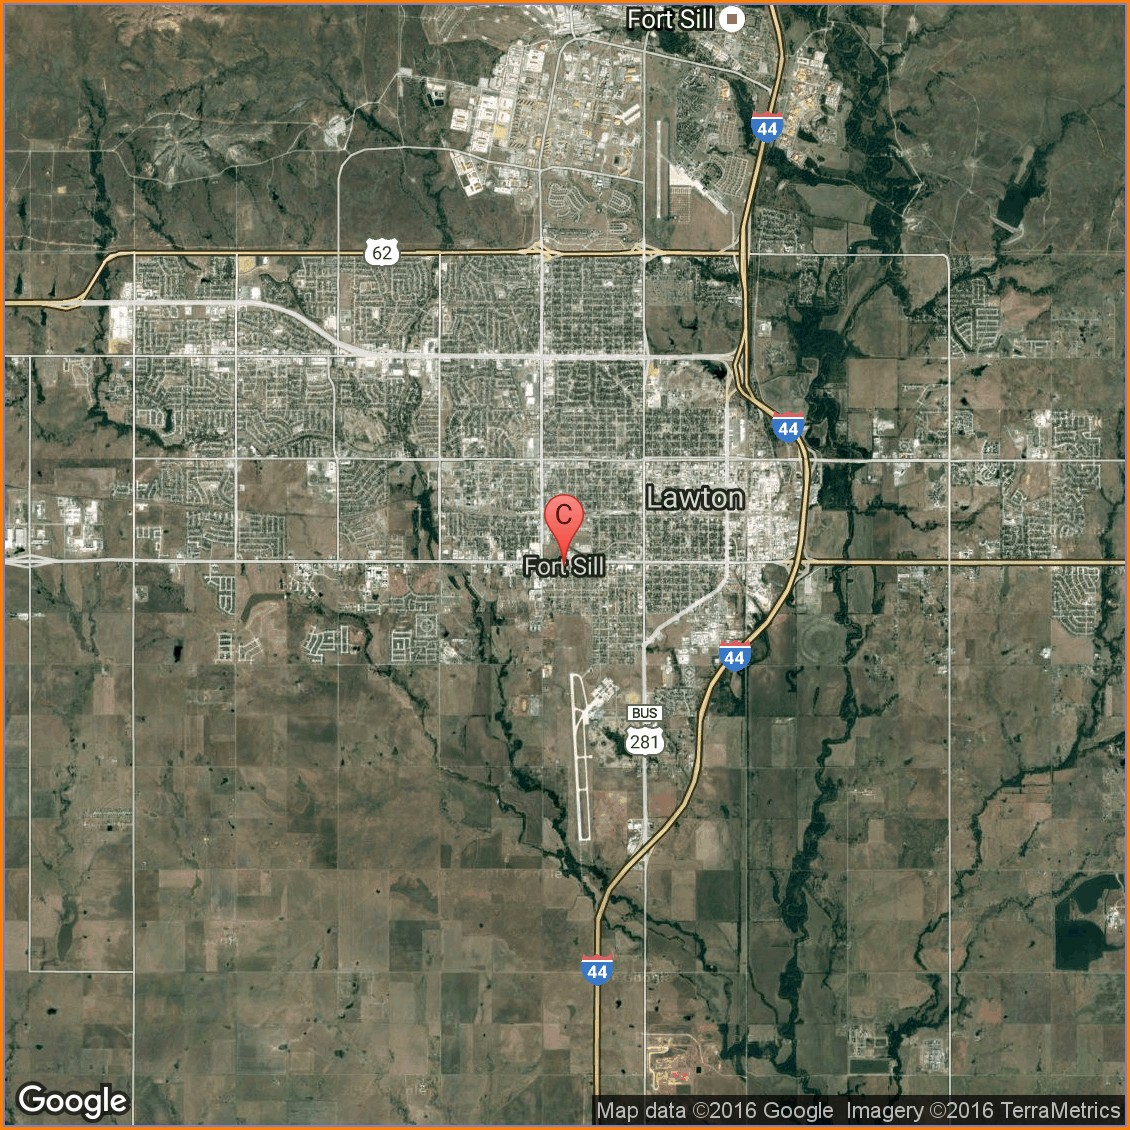 Fort Sill Oklahoma Army Base Map